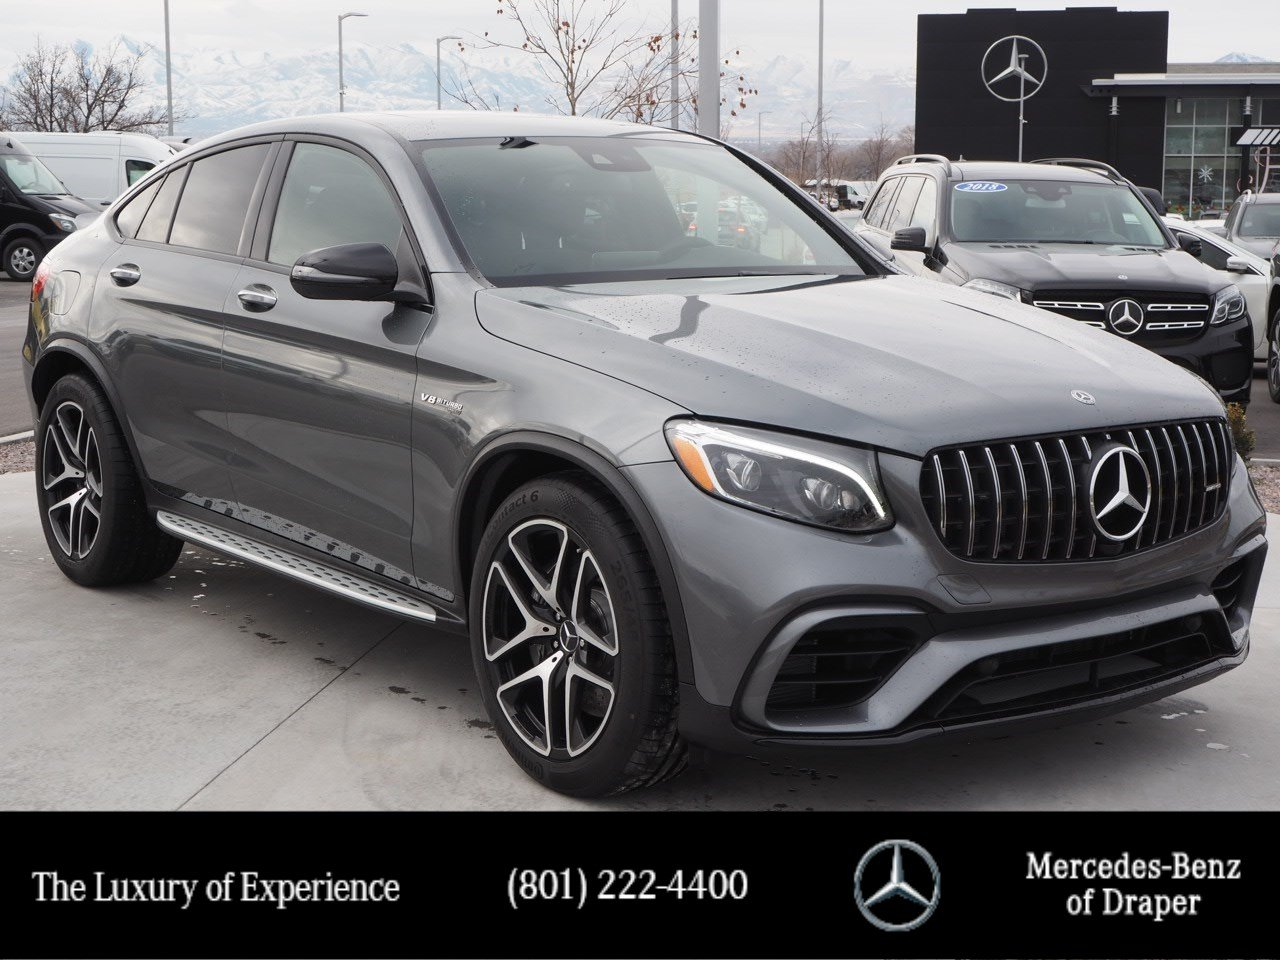 Mercedes Benz 4Matic >> New 2019 Mercedes Benz Glc Amg 63 4matic Coupe In Draper Kf488915